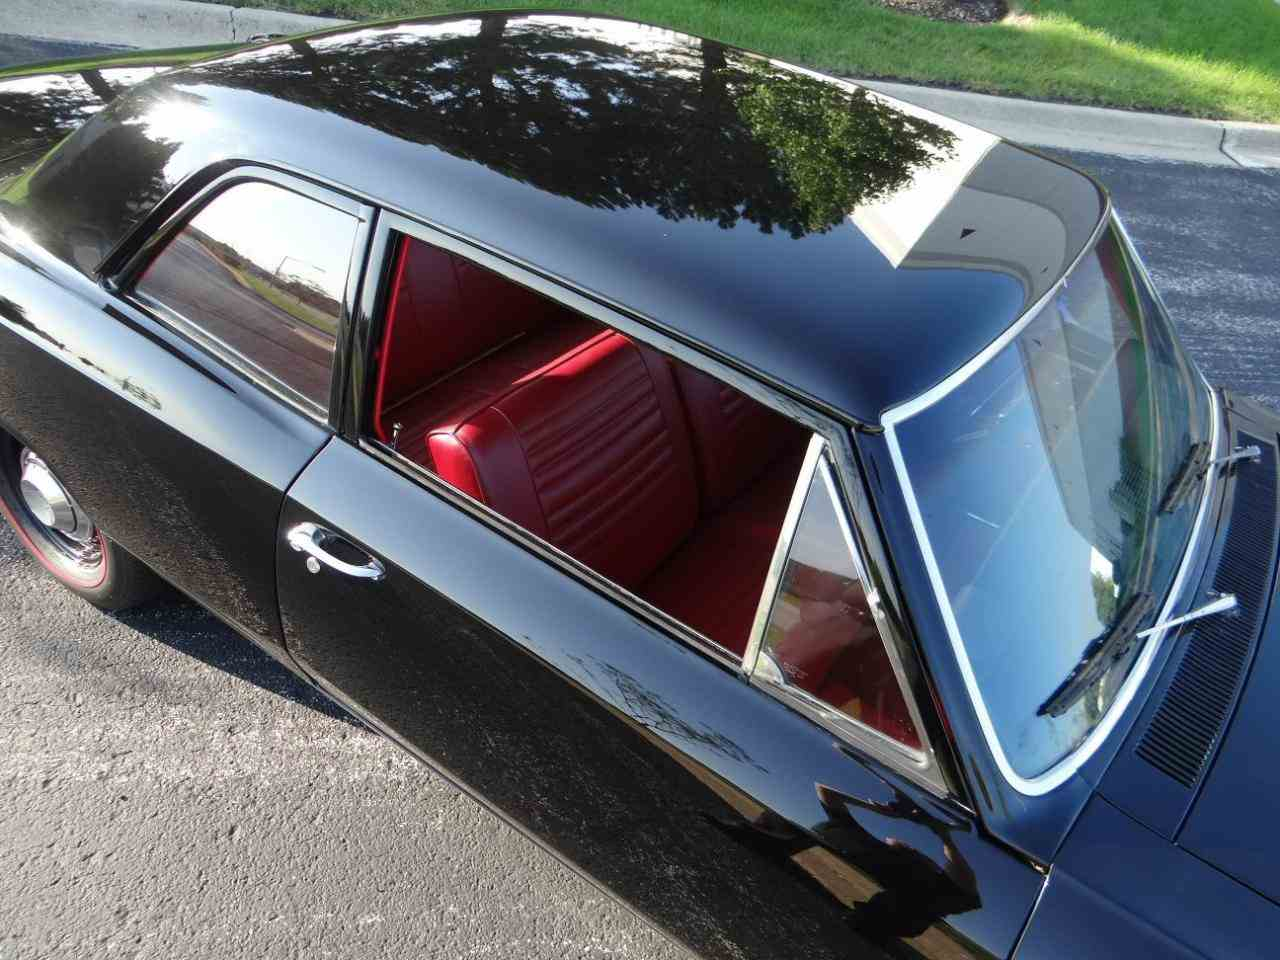 Large Picture of 1967 Chevrolet Chevelle located in Crete Illinois - $39,995.00 Offered by Gateway Classic Cars - Chicago - KEYO